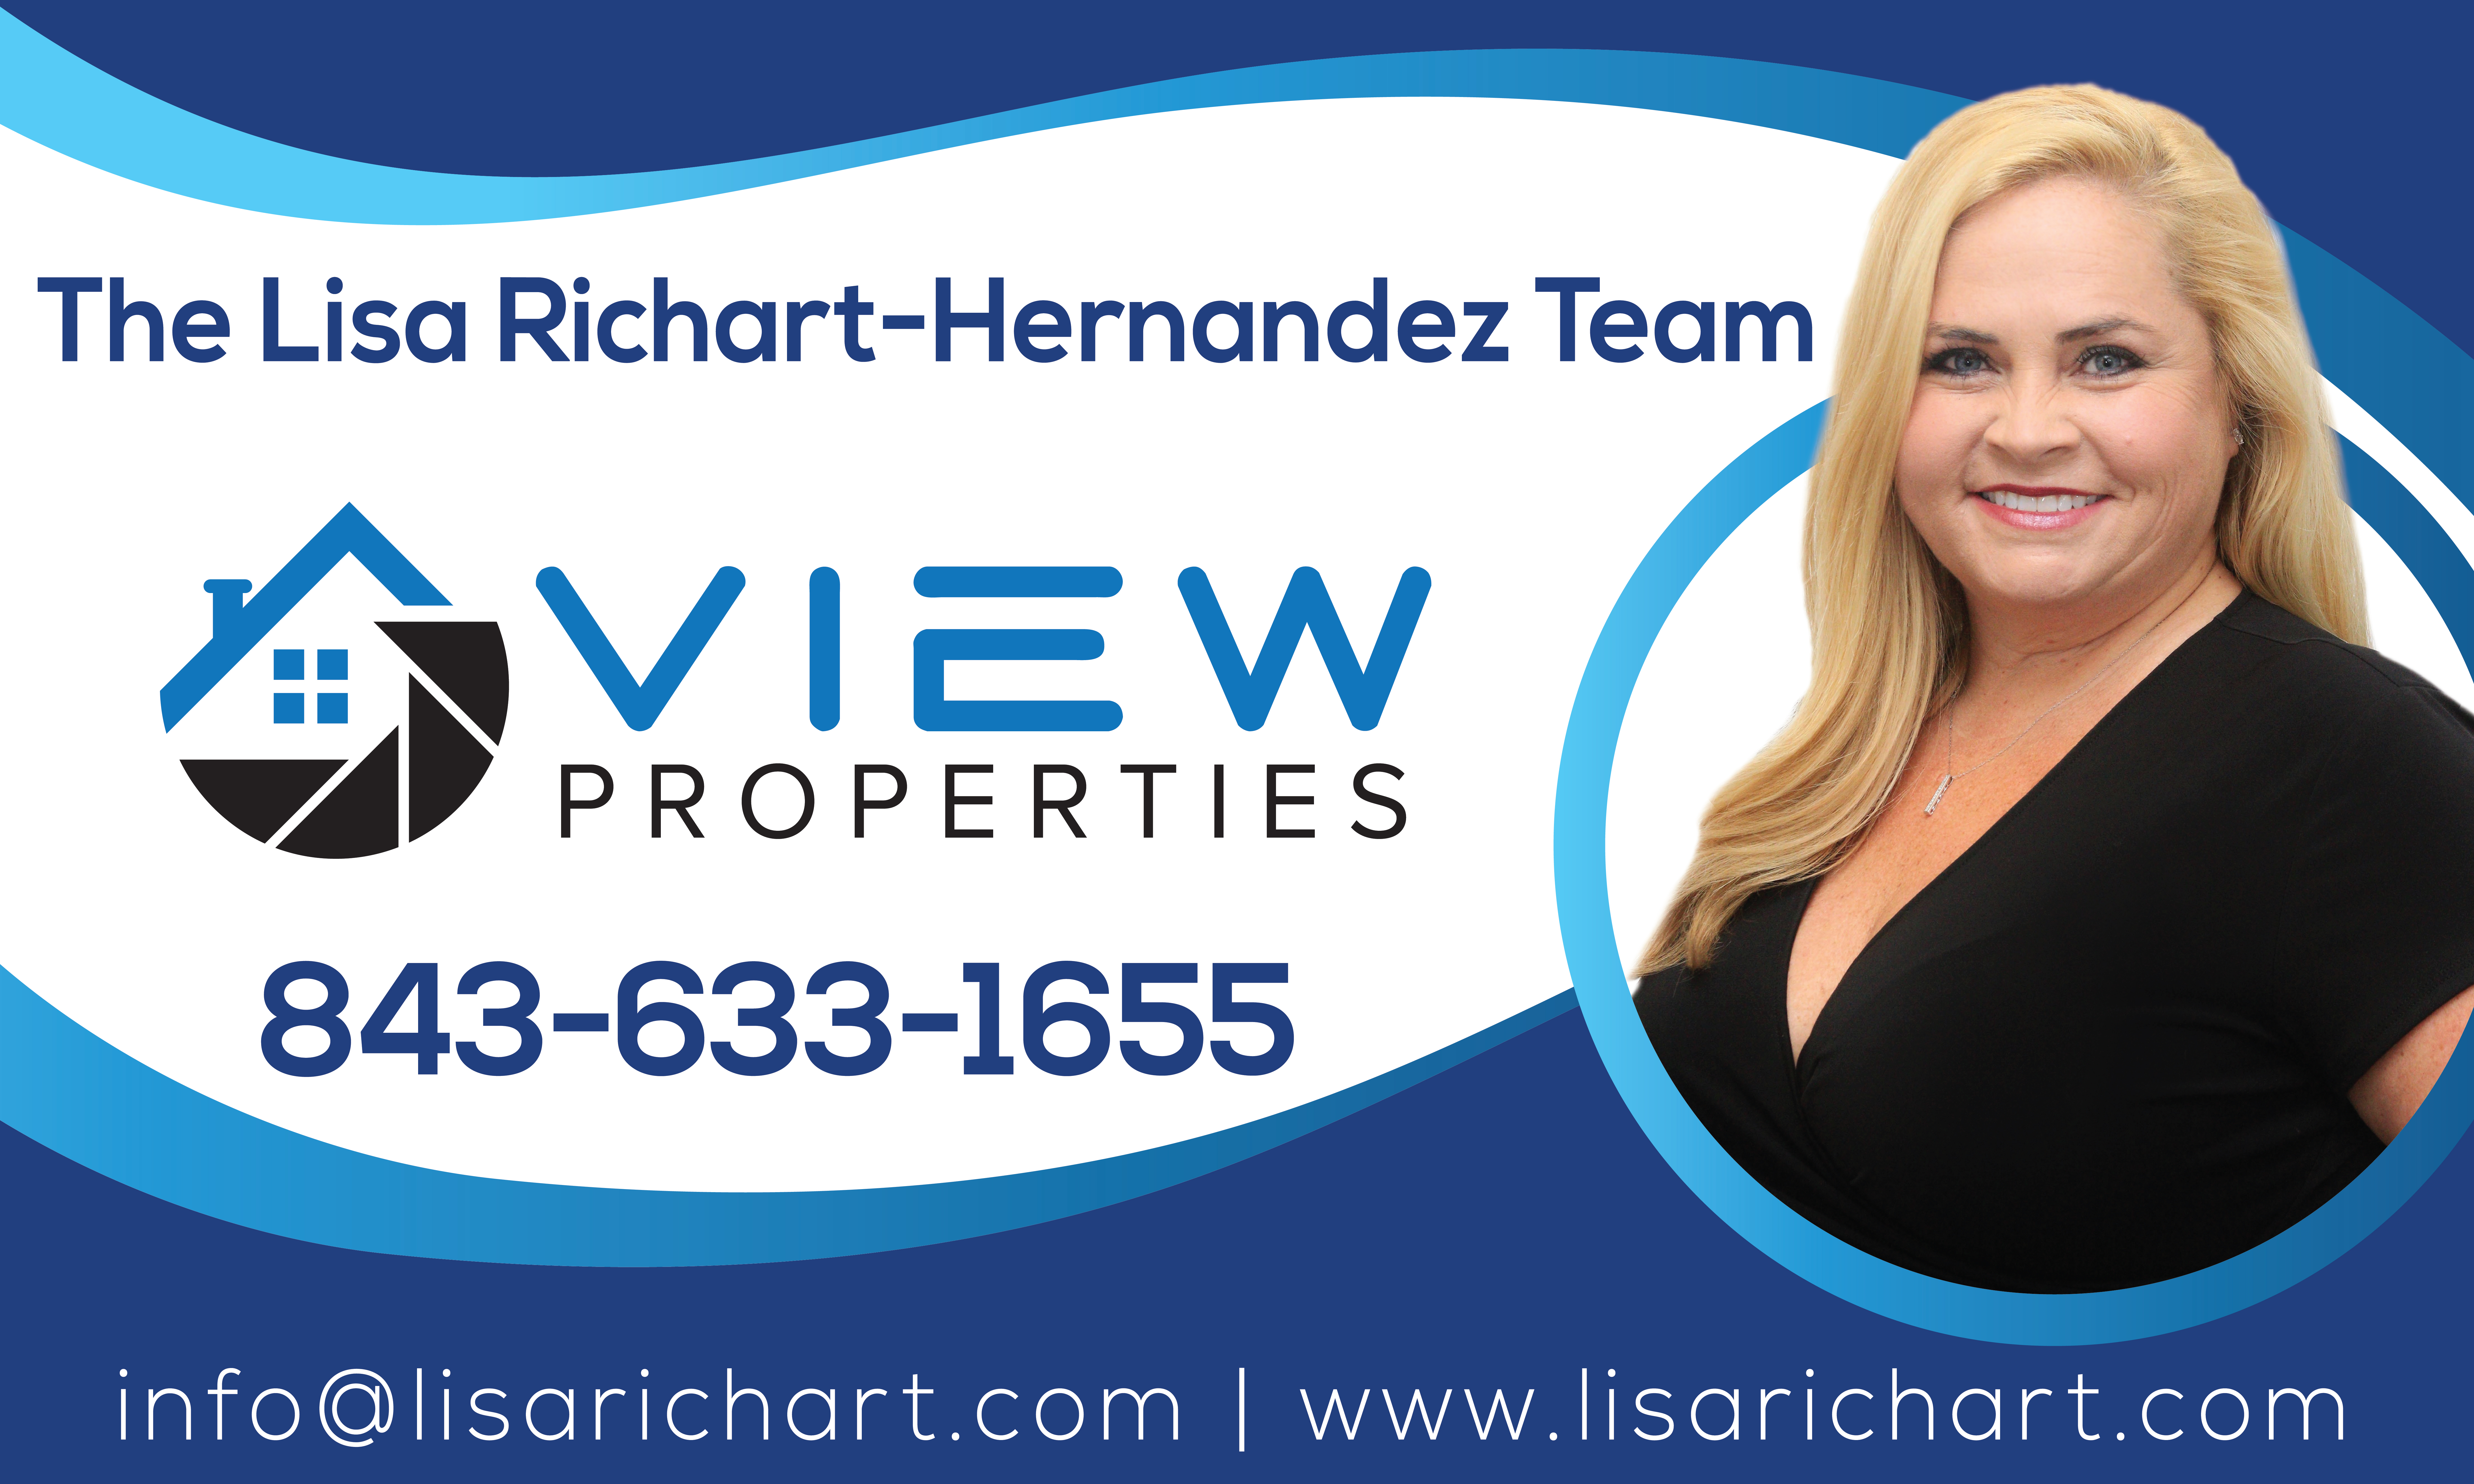 View Properties Yard Sign